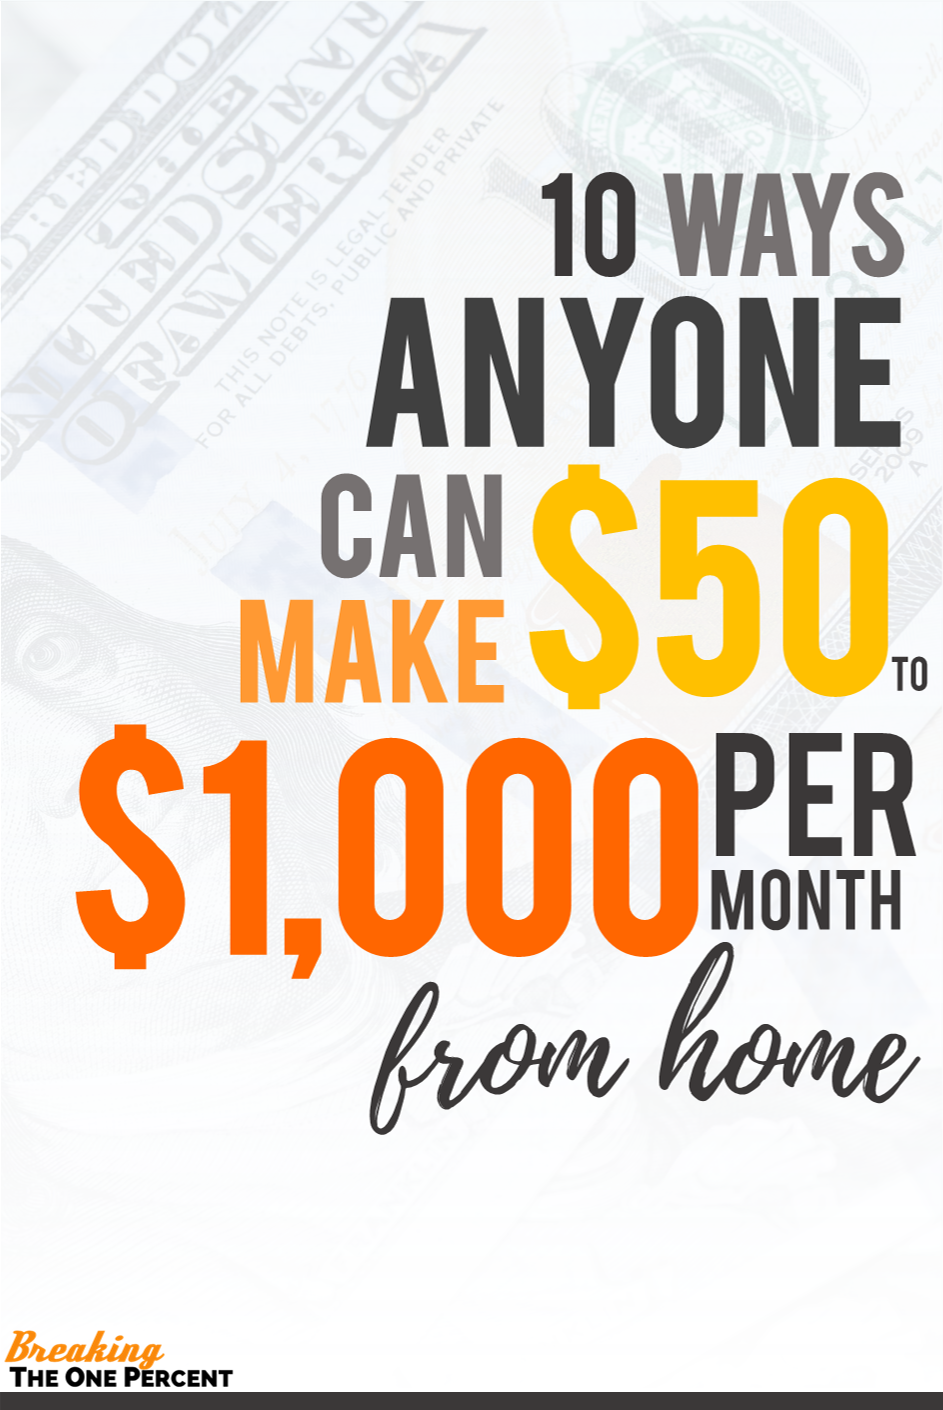 Make Money at Home: Top Ideas to Net at Least $1,000 per Month ...